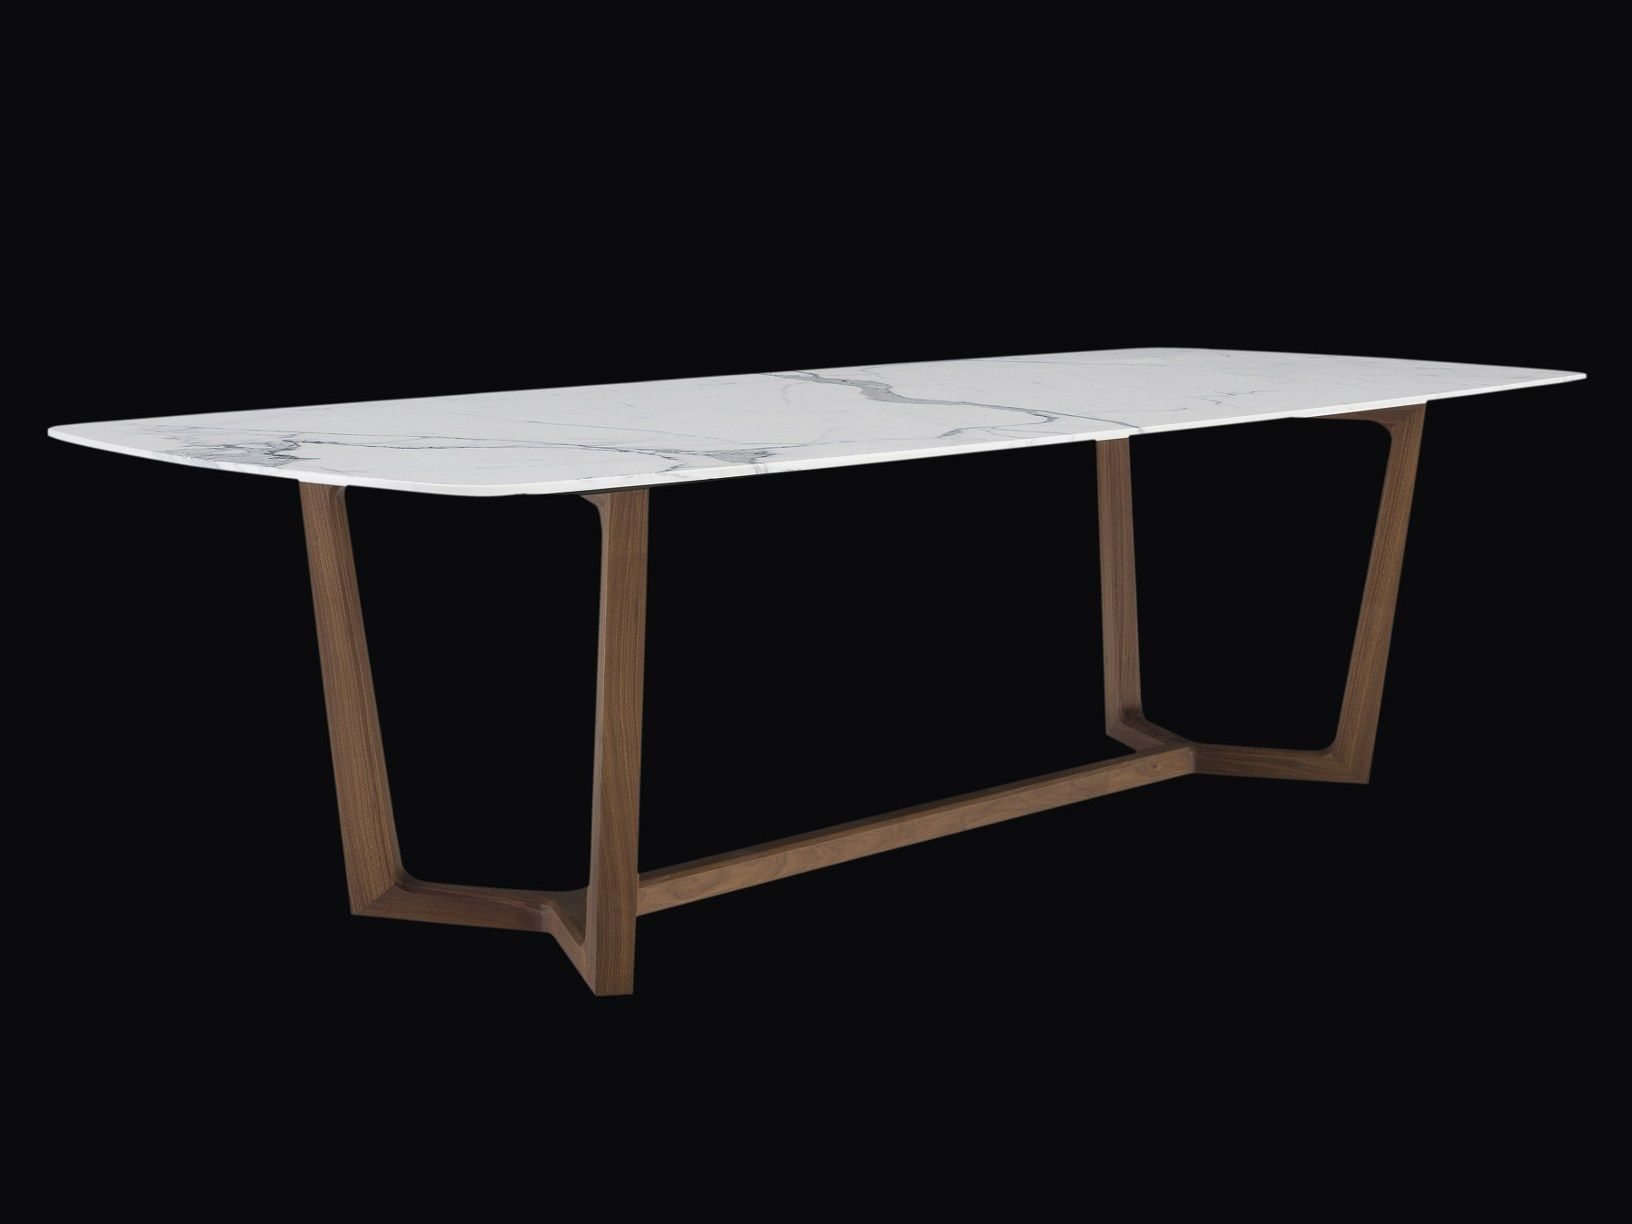 table rectangulaire en marbre concorde collection concorde by poliform design au 116. Black Bedroom Furniture Sets. Home Design Ideas